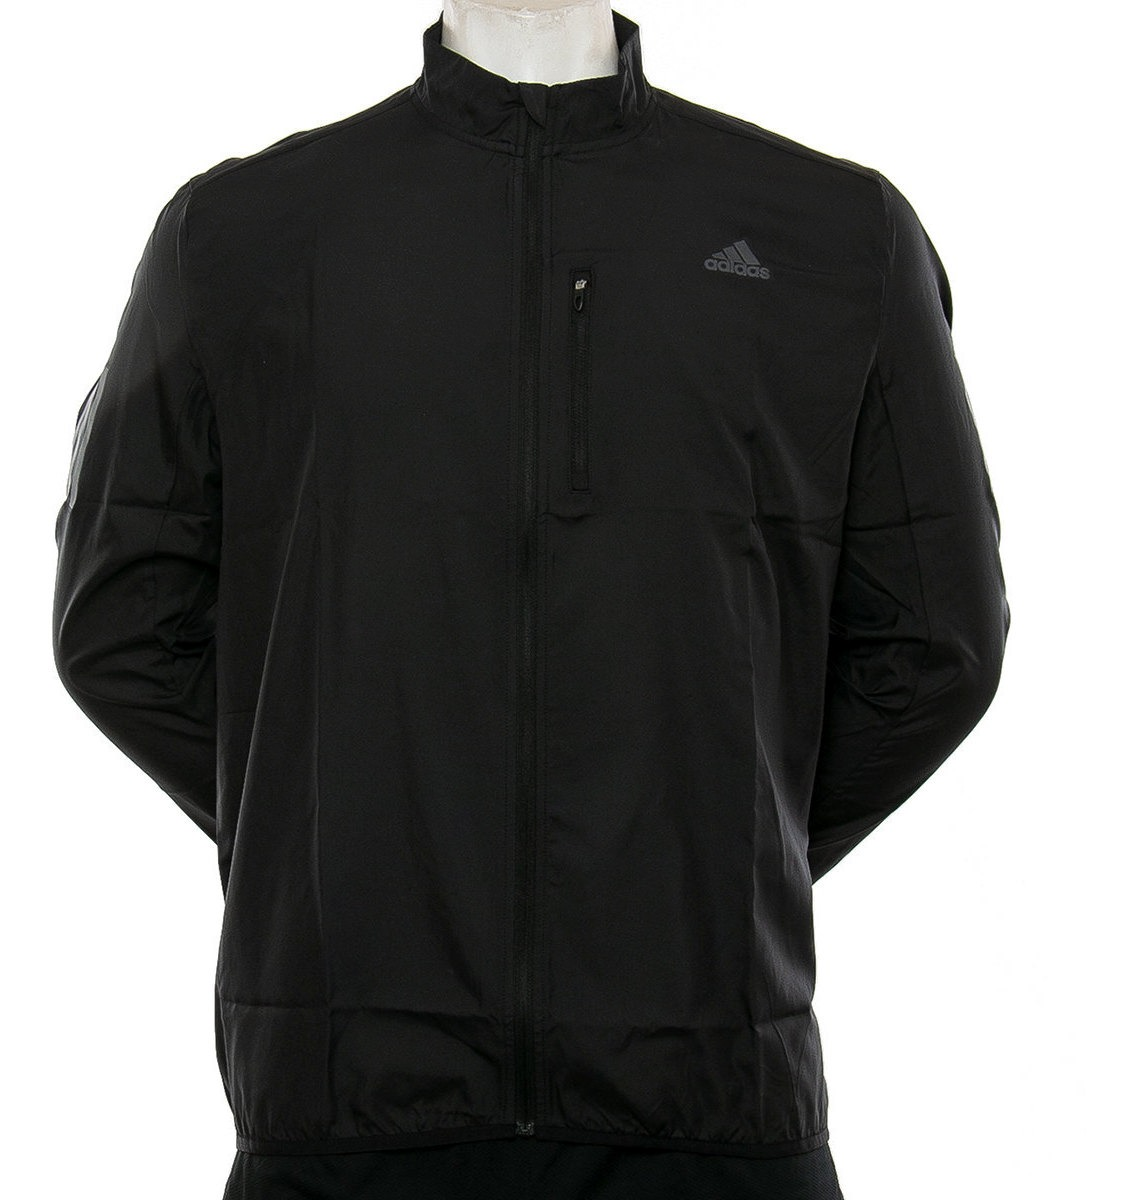 Campera Own The Run adidas